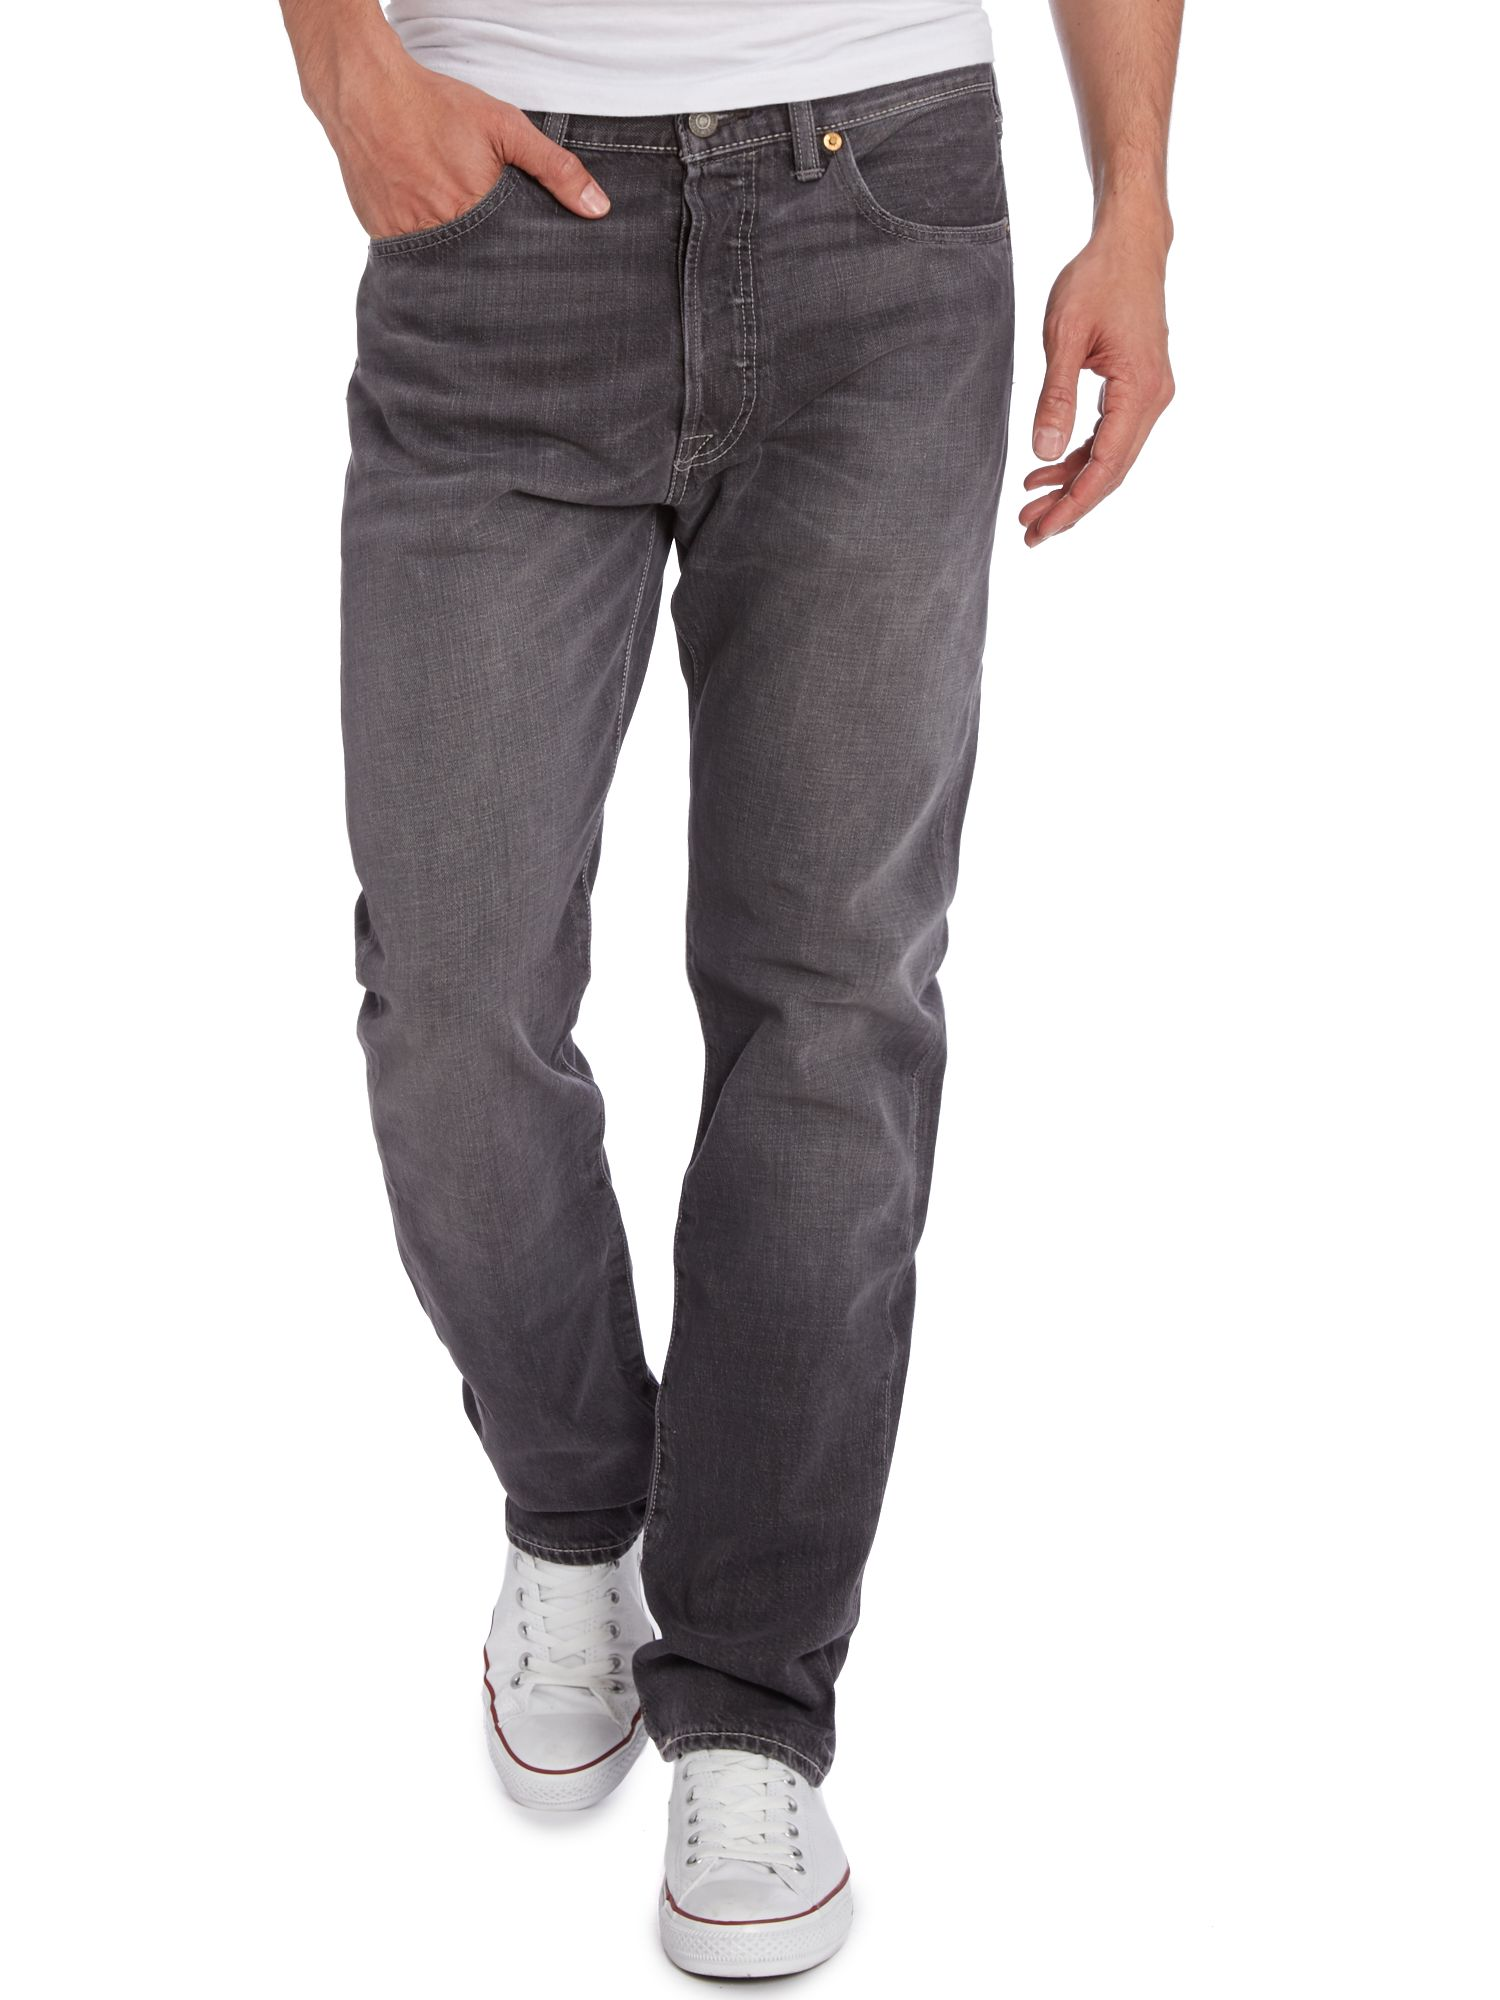 501 straight fit moody monday jeans